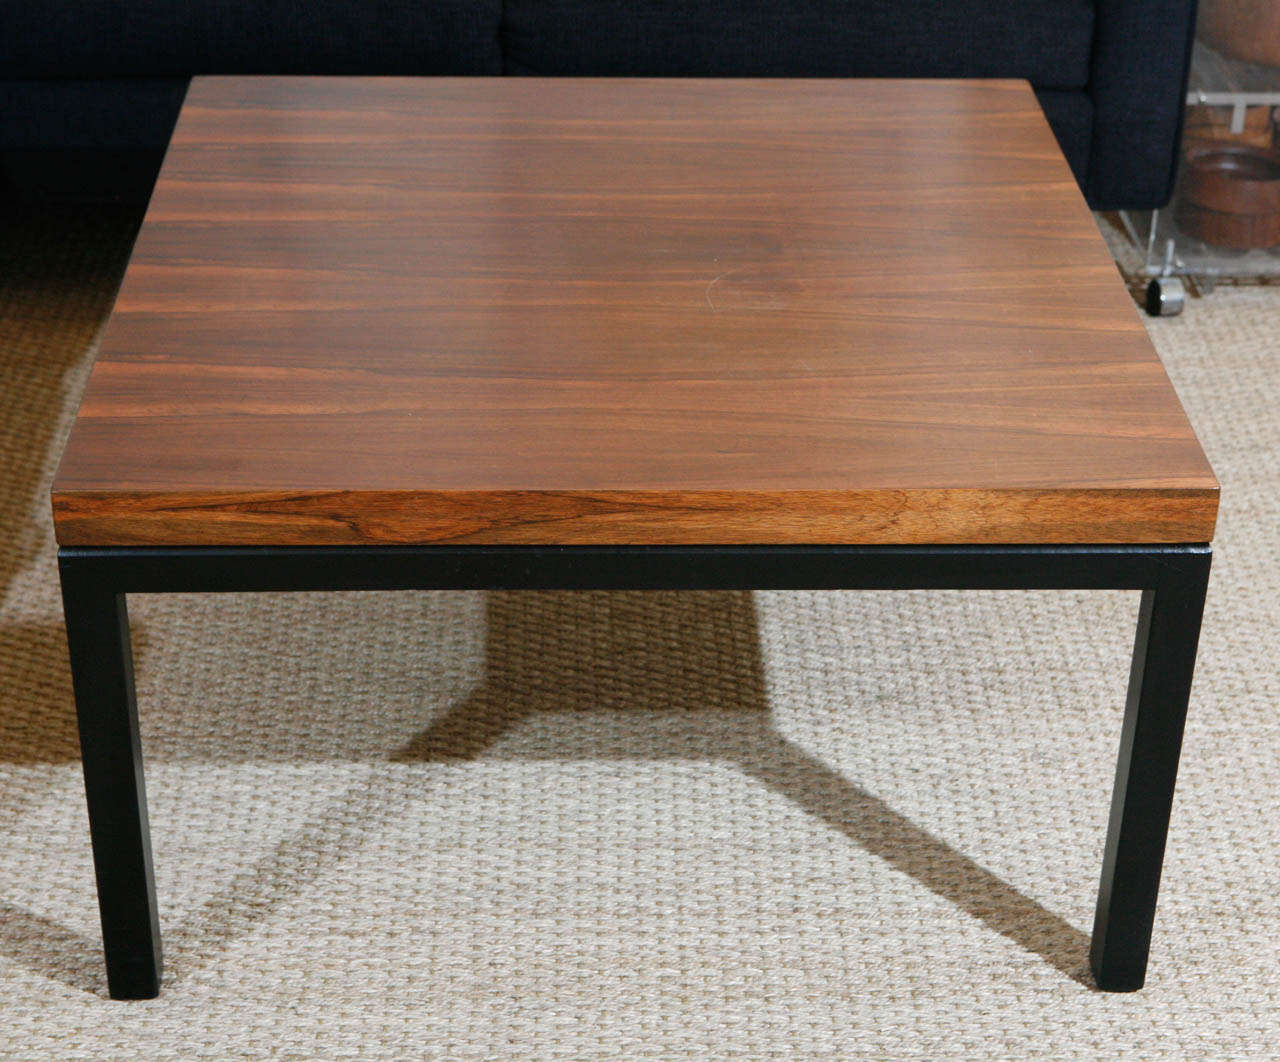 Milo Baughman for Thayer Coggins Square Rosewood Coffee Table at